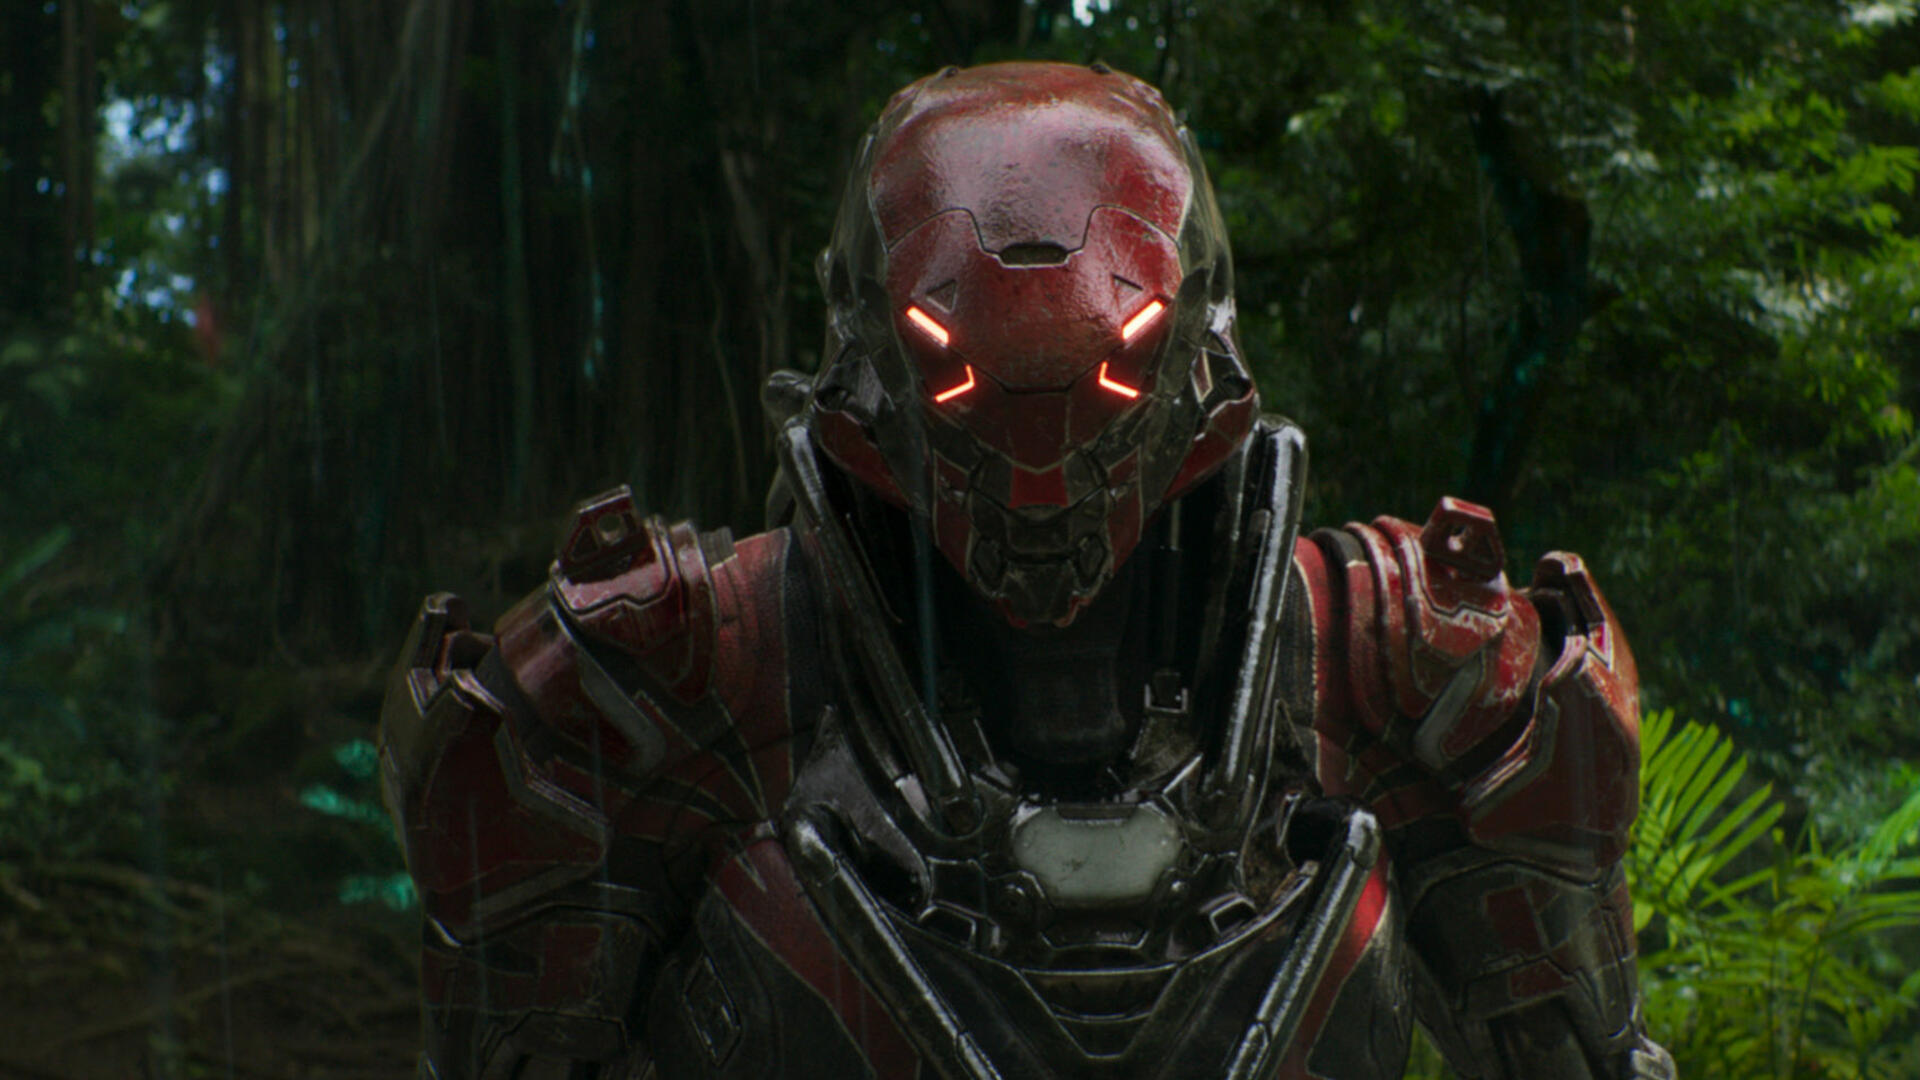 Neil Blomkamp's Live-Action Anthem Trailer Is Gorgeous, but Does Nothing to Explain the Game's Plot